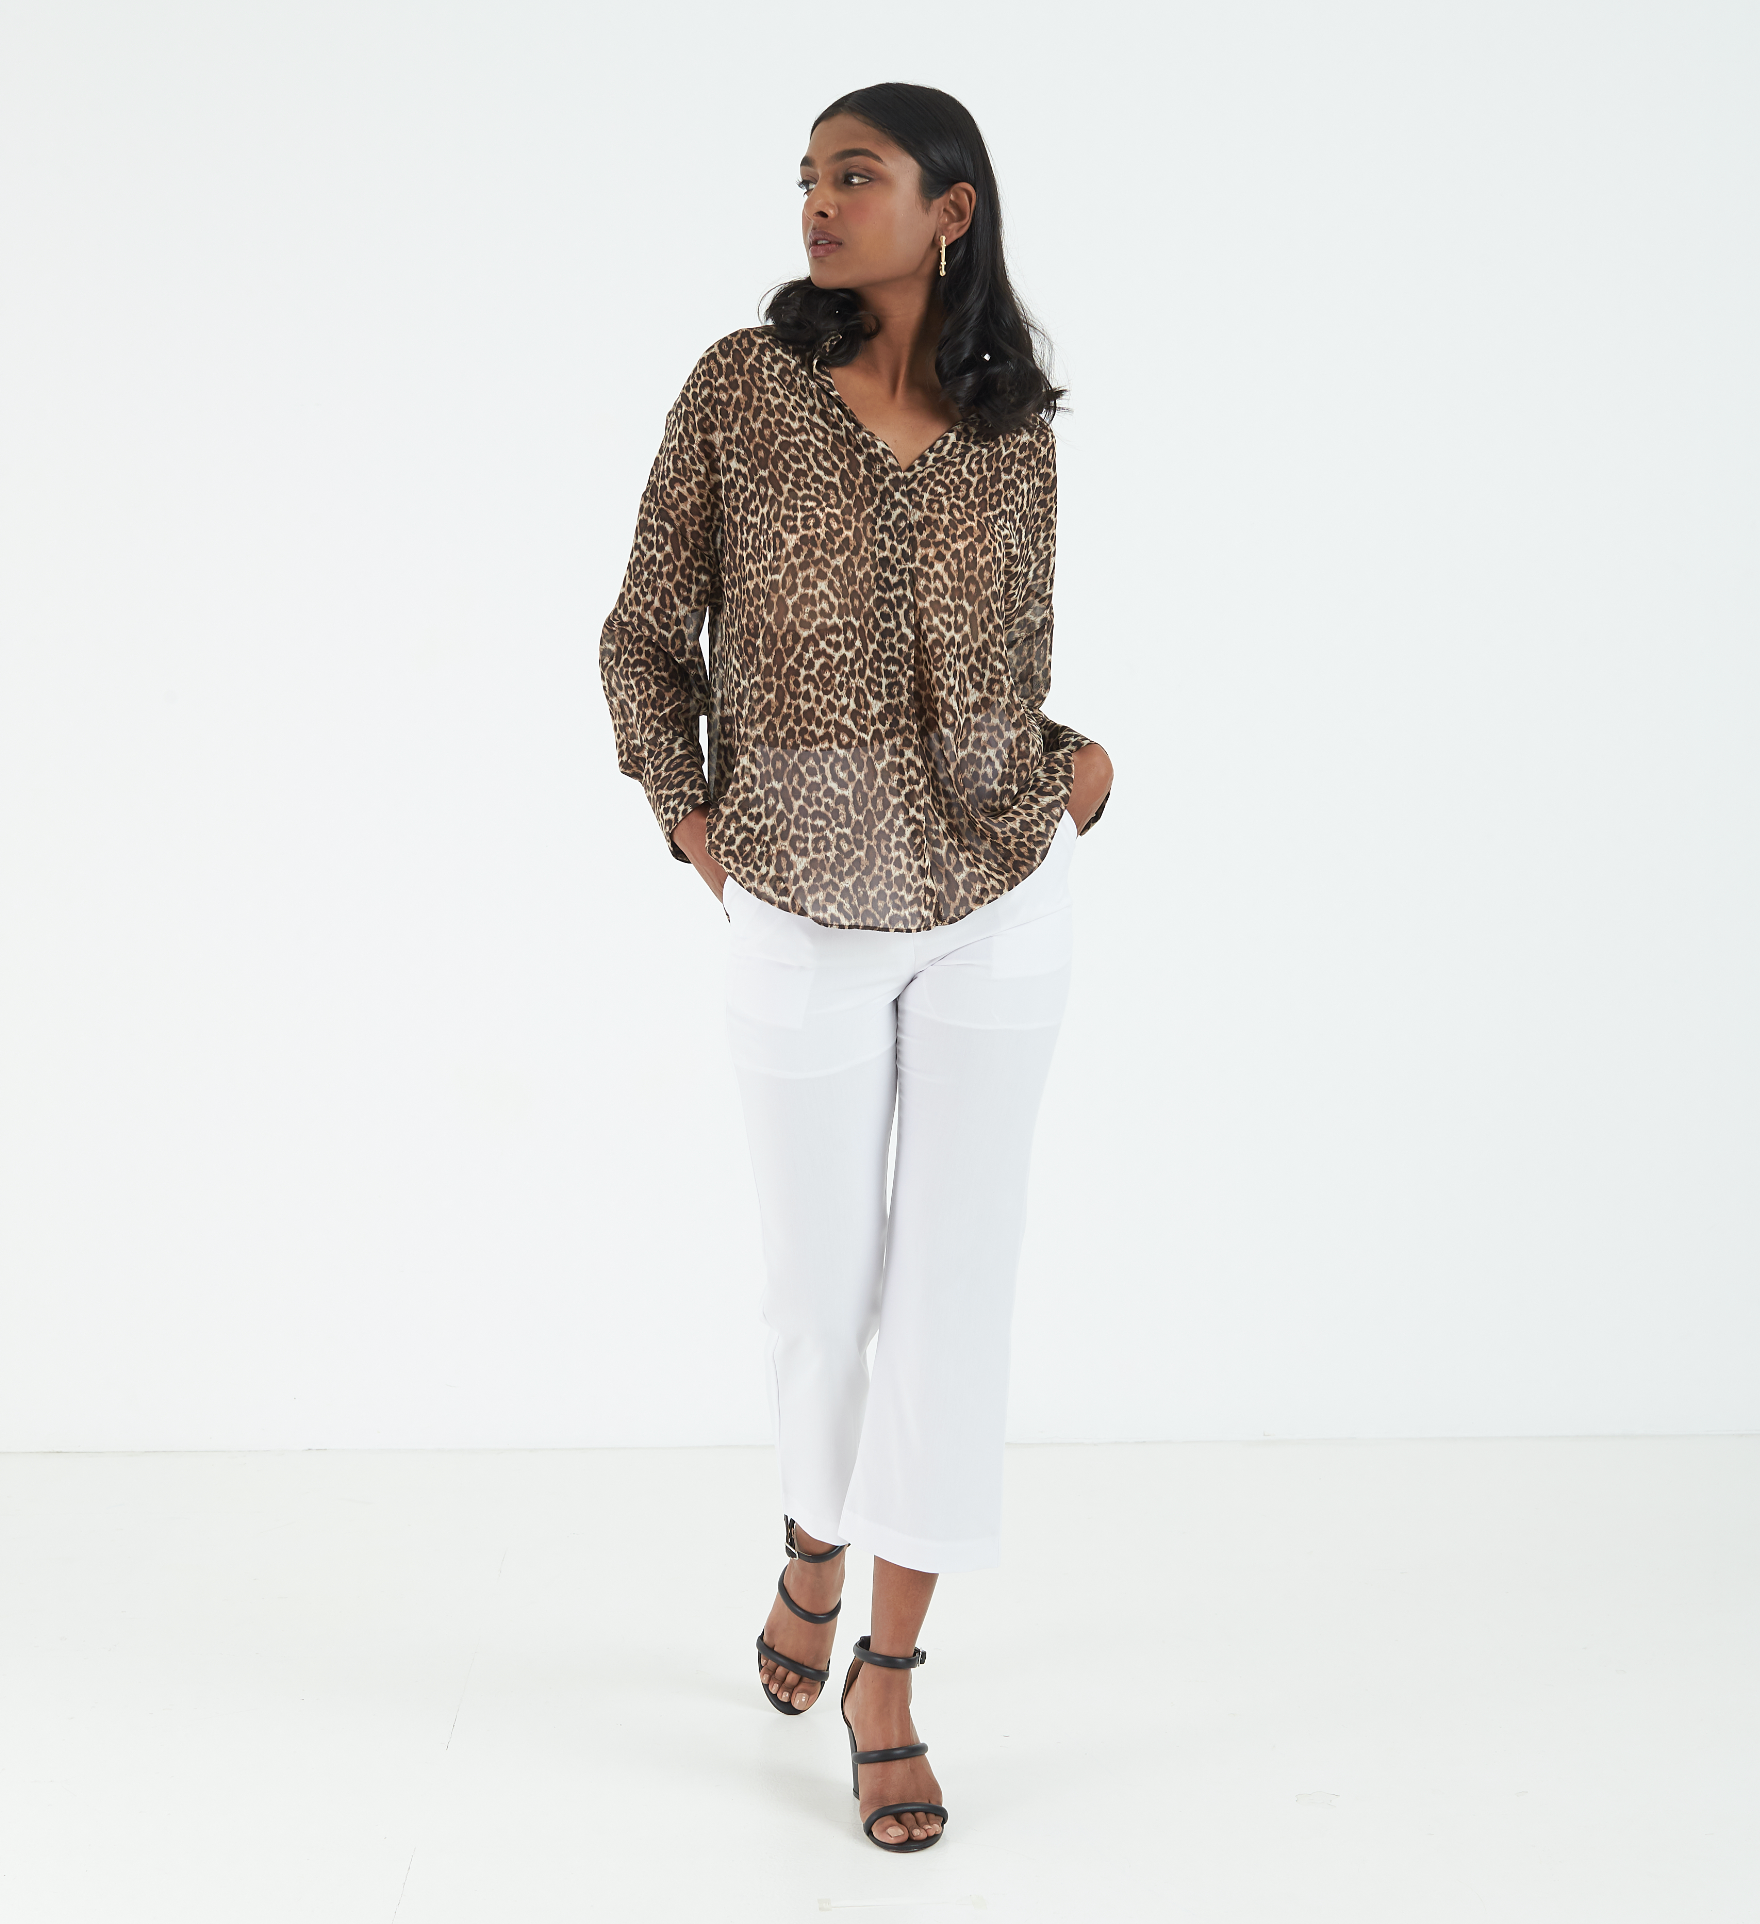 OLIVIA Blog: Wild for leopard prints image